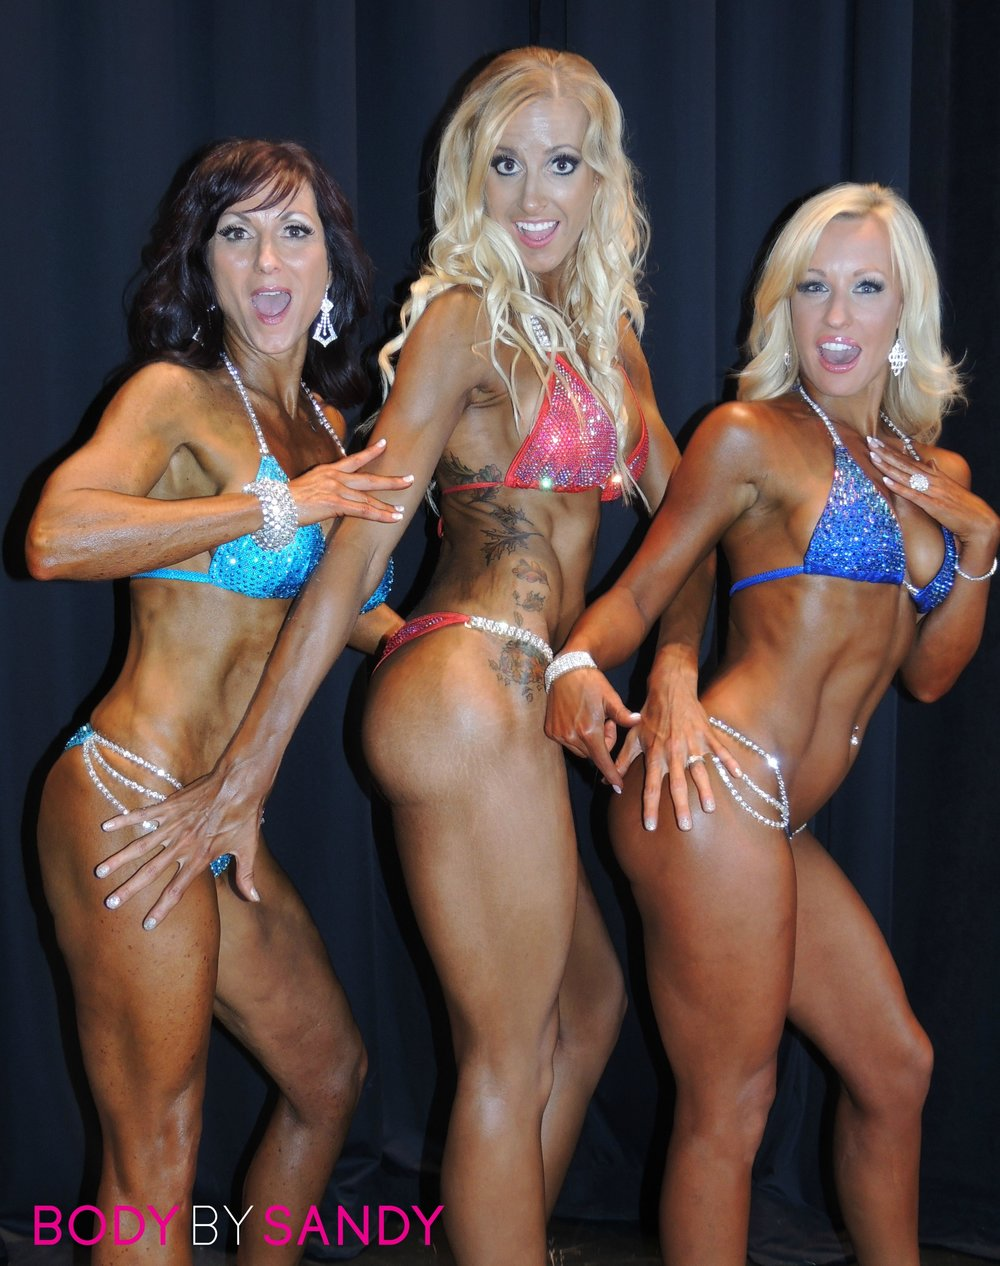 2015 NPC Warrior Classic-The girls backstage3.jpg